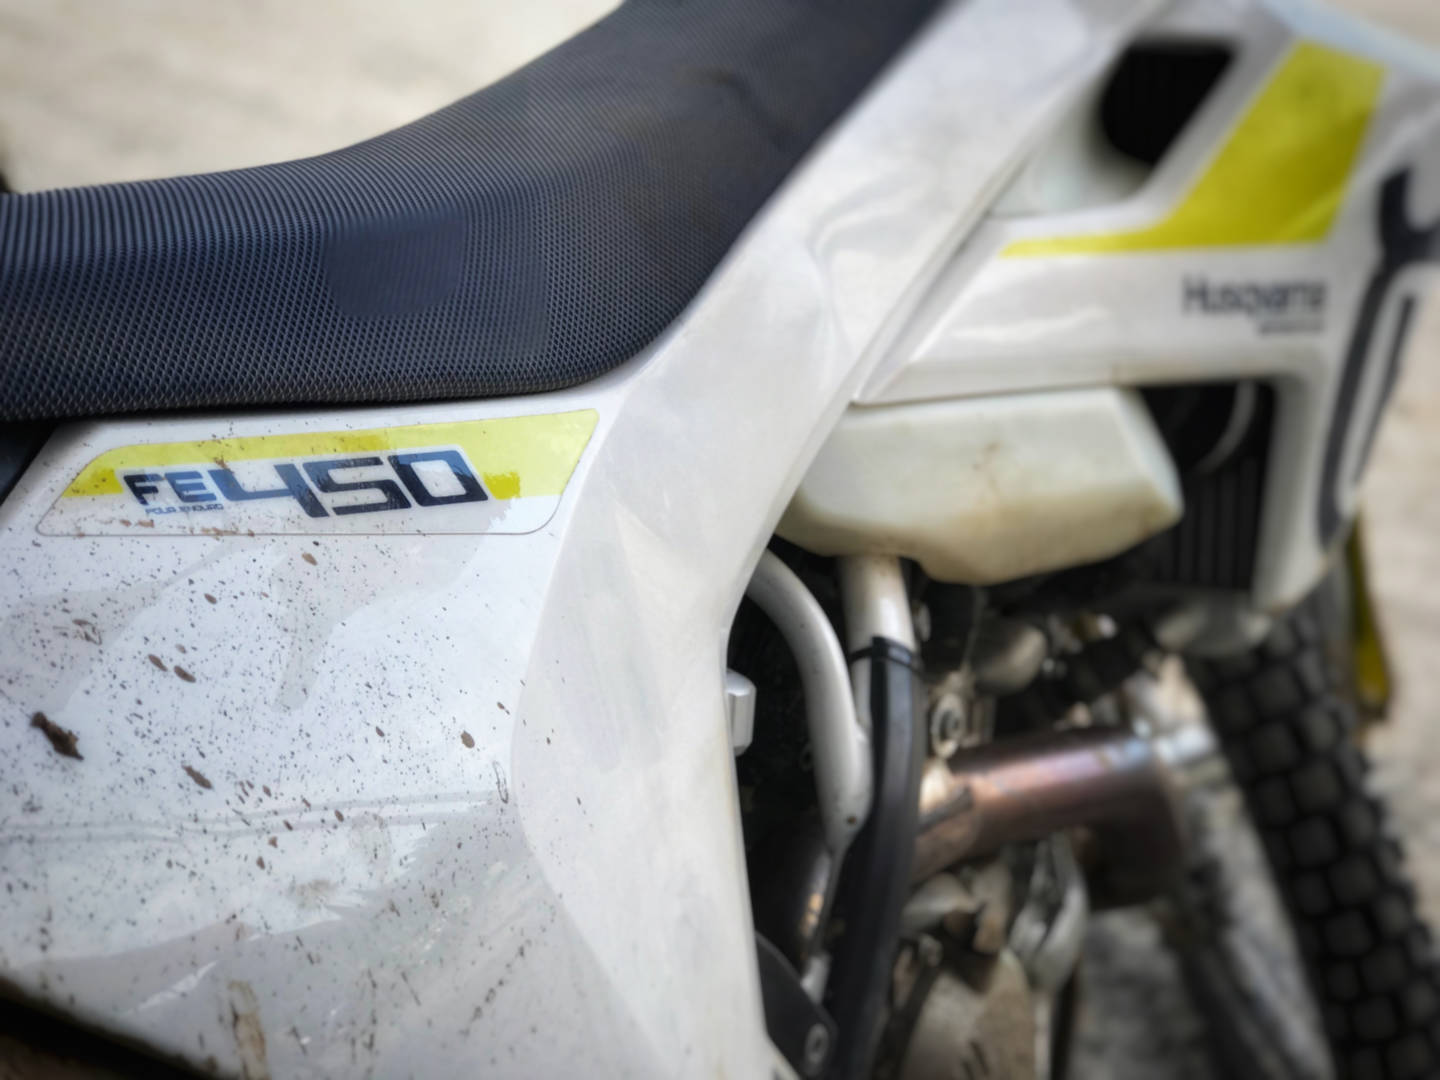 A photo of a white Husqvarna enduro motorcycle